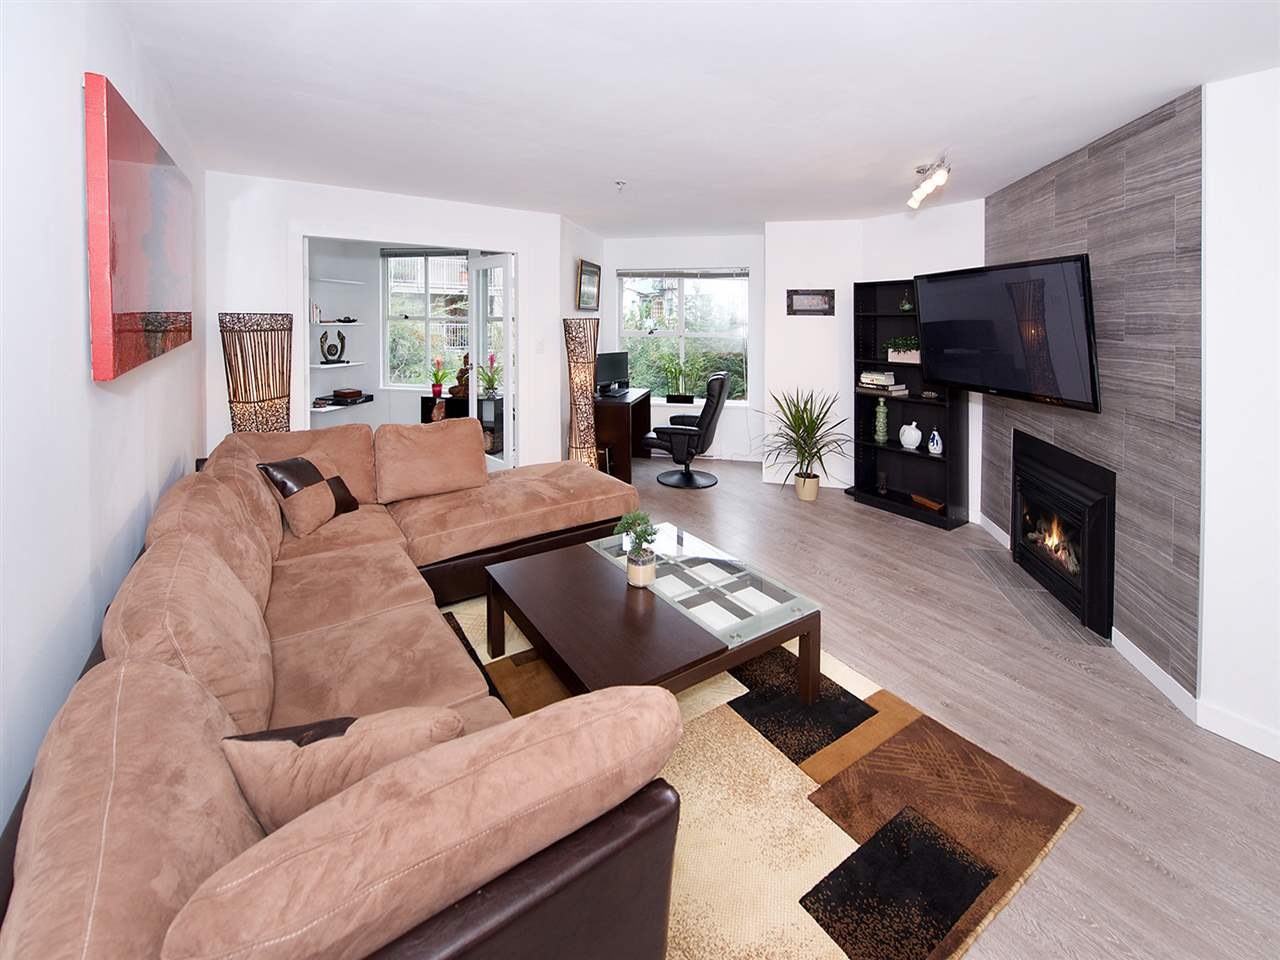 Main Photo: 207 1465 COMOX STREET in Vancouver: West End VW Condo for sale (Vancouver West)  : MLS(r) # R2024122